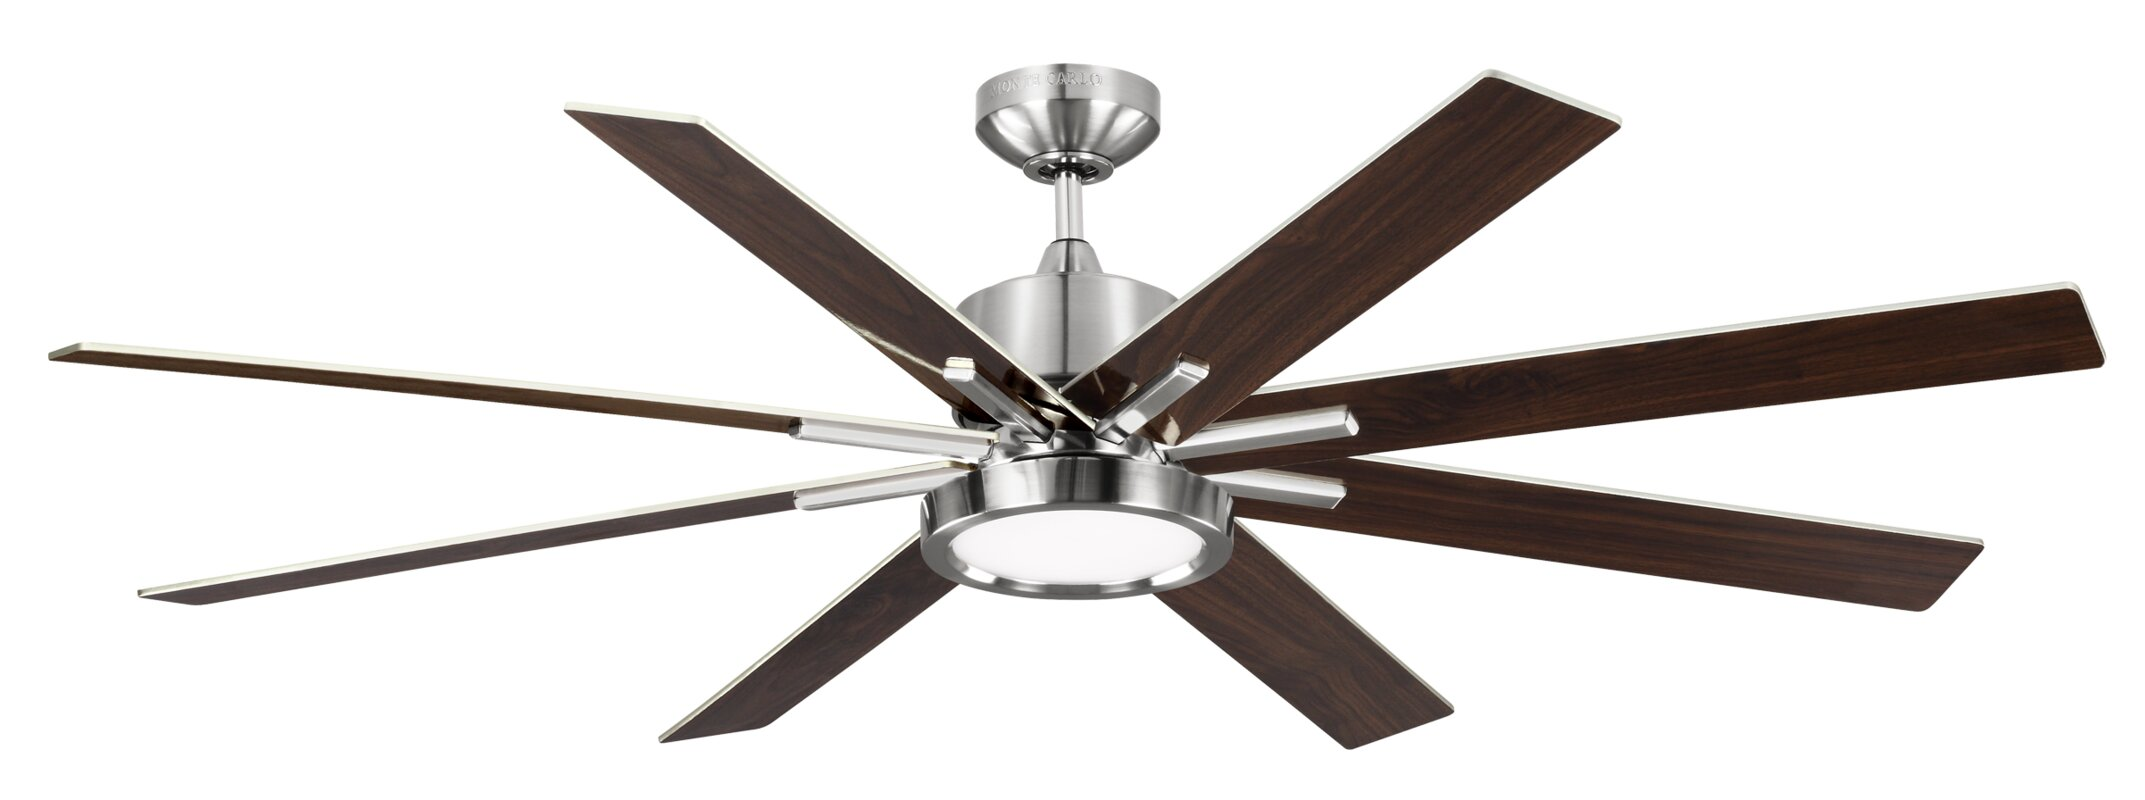 Outdoor ceiling fans amazing patio ceiling fans exterior remodel wade logan 60 woodlynne 8 blade outdoor ceiling fan with remote aloadofball Gallery